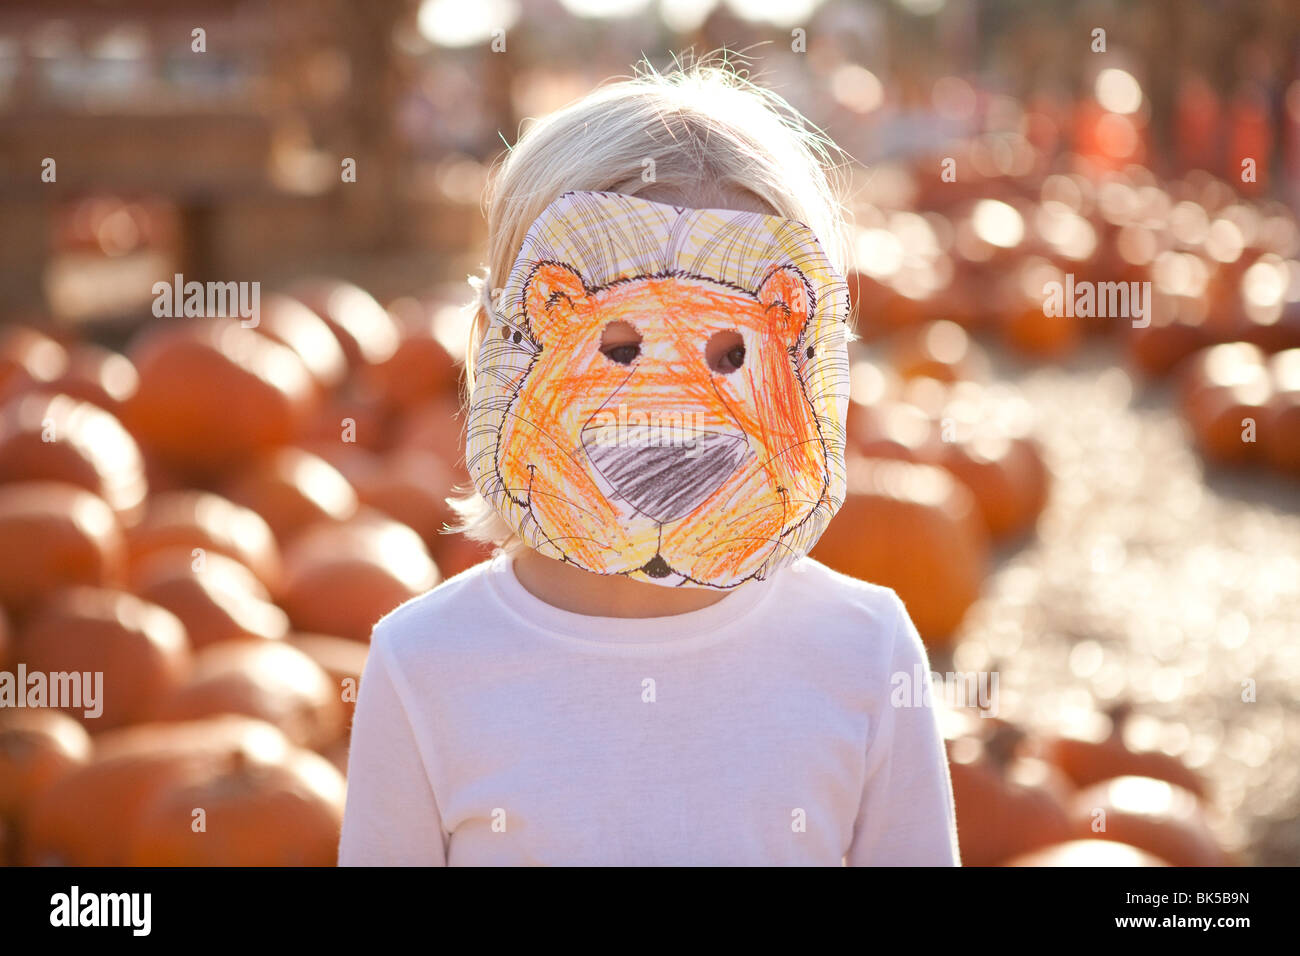 Young child with homemade lion mask - Stock Image